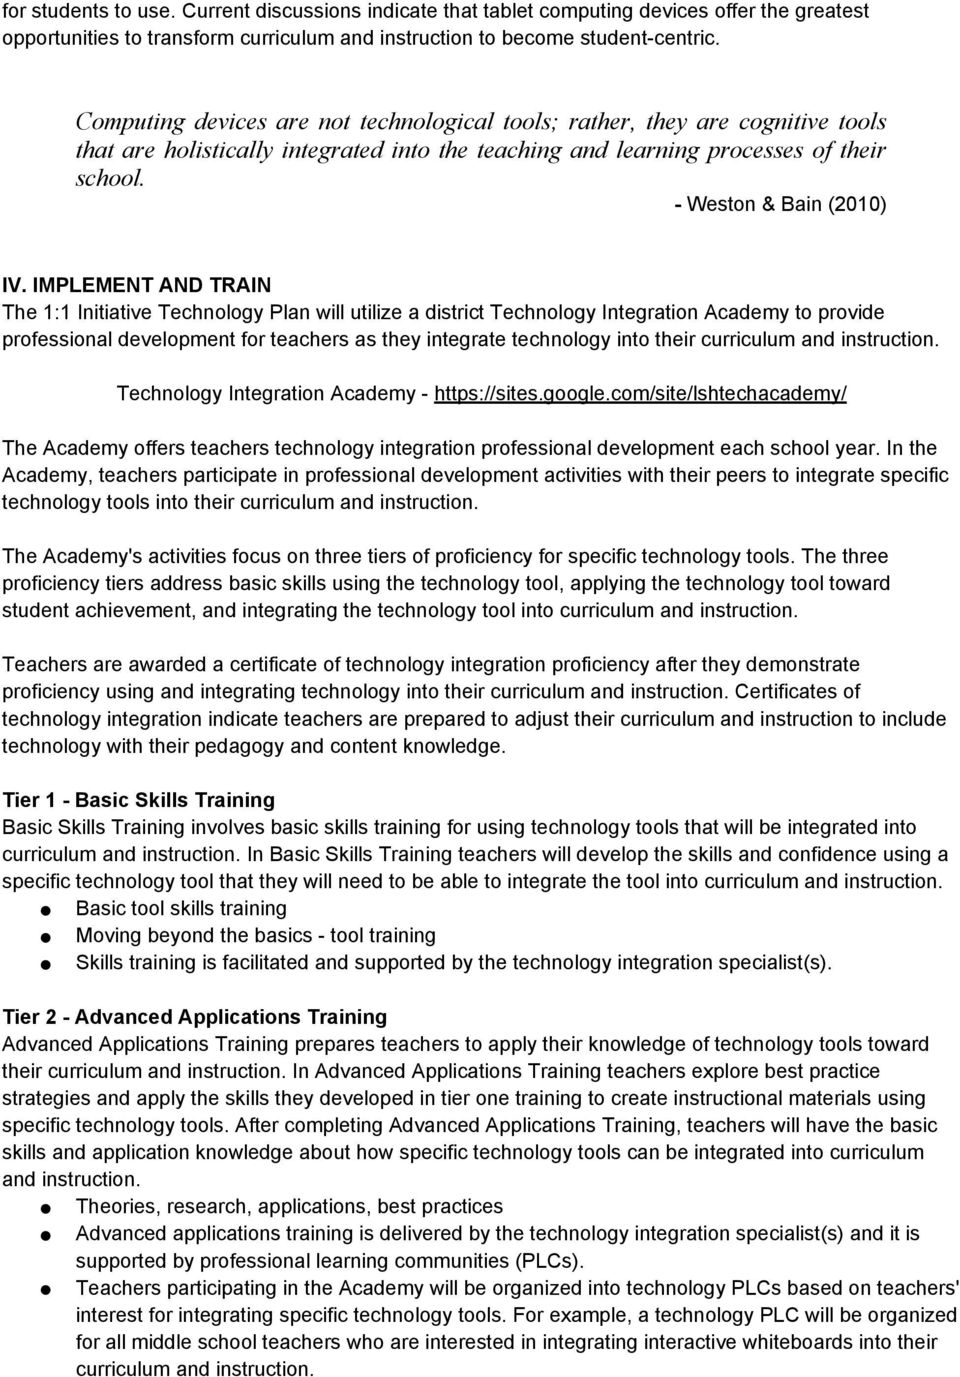 IMPLEMENT AND TRAIN The 1:1 Initiative Technology Plan will utilize a district Technology Integration Academy to provide professional development for teachers as they integrate technology into their